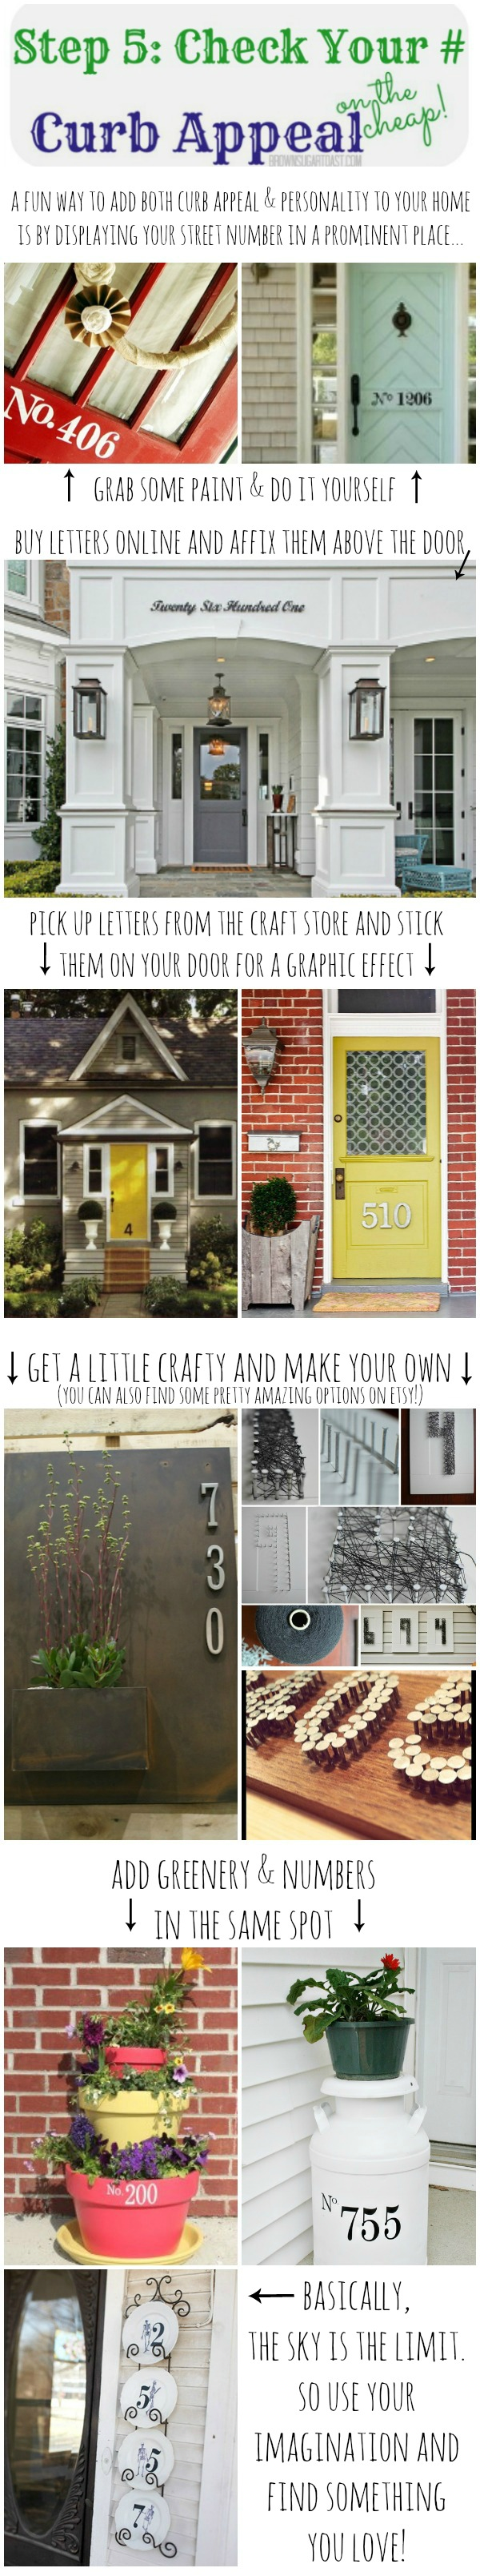 step5 curb appeal